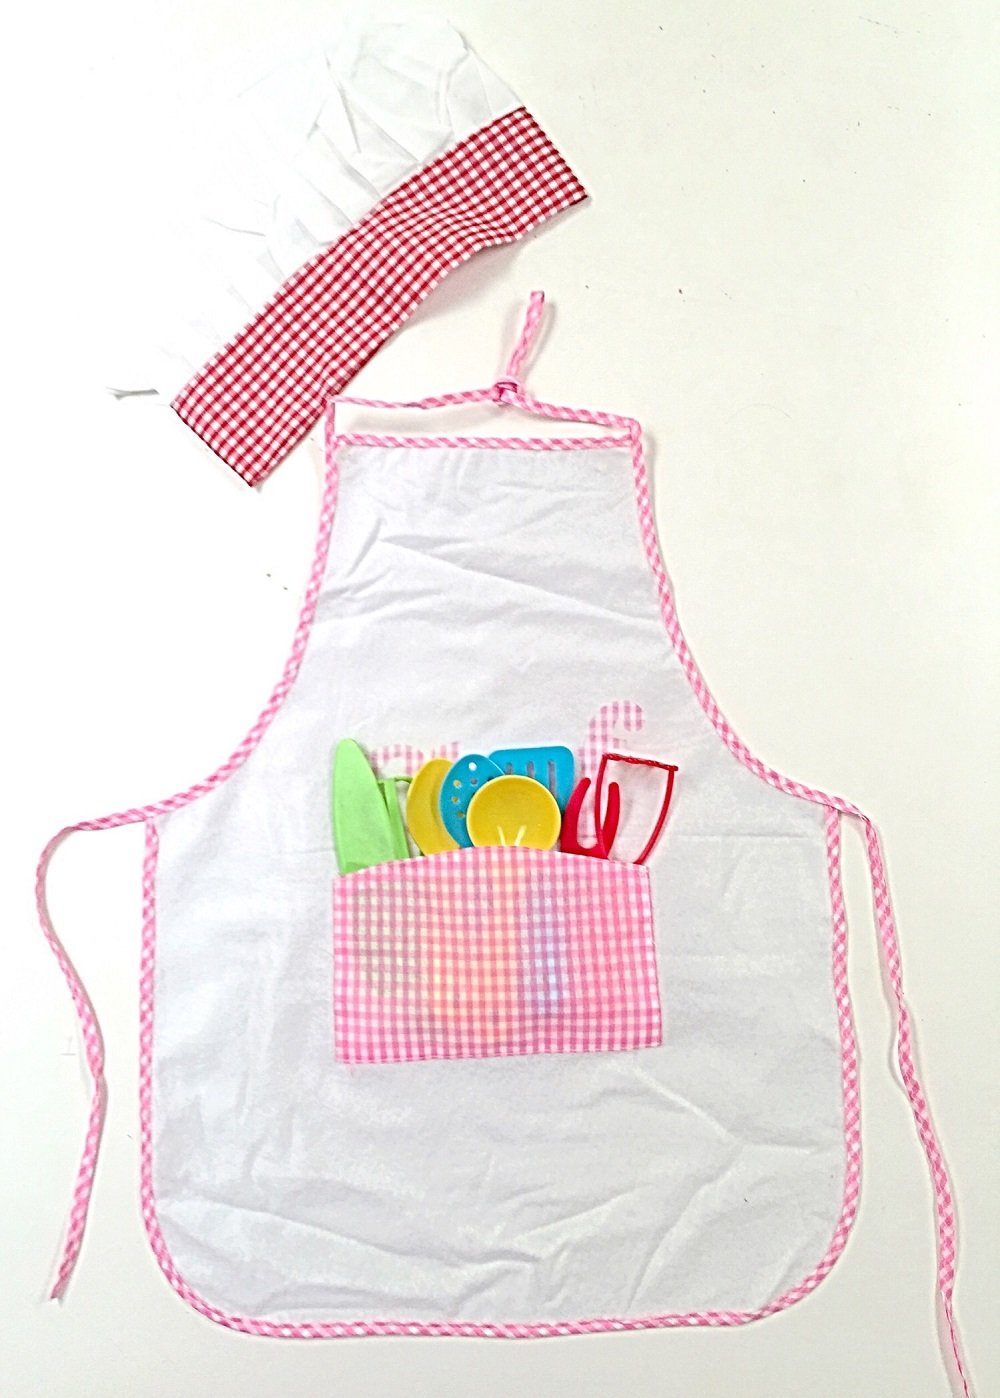 bcd1a8631eda1 Get Quotations · Littlest Chef Kids Apron with Chefs Hat and 8 Piece  Cooking Utensil Set (Pink)